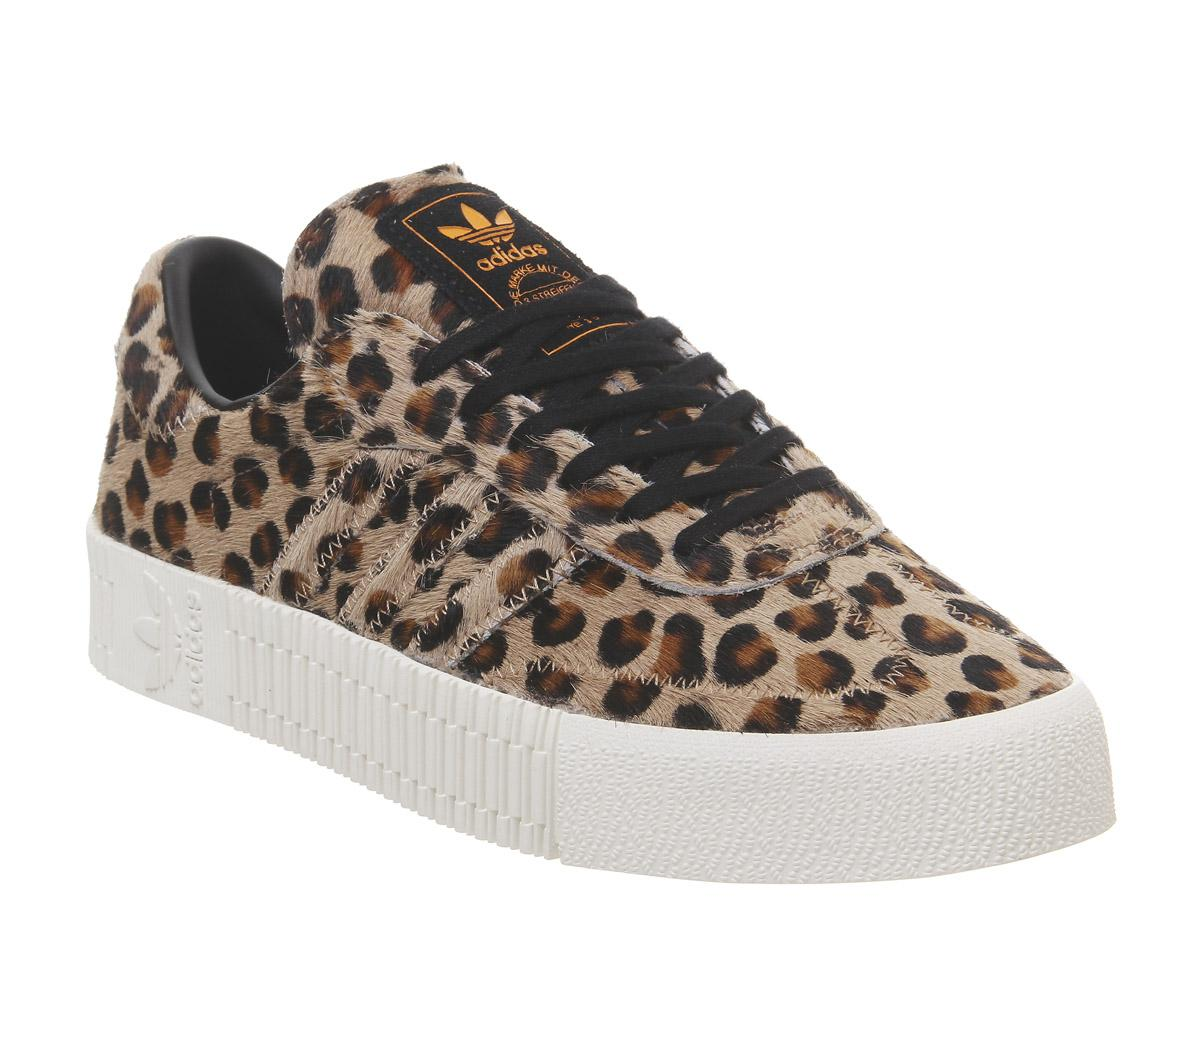 adidas Samba Rose Trainers Leopard Black Off White - Sneaker damen